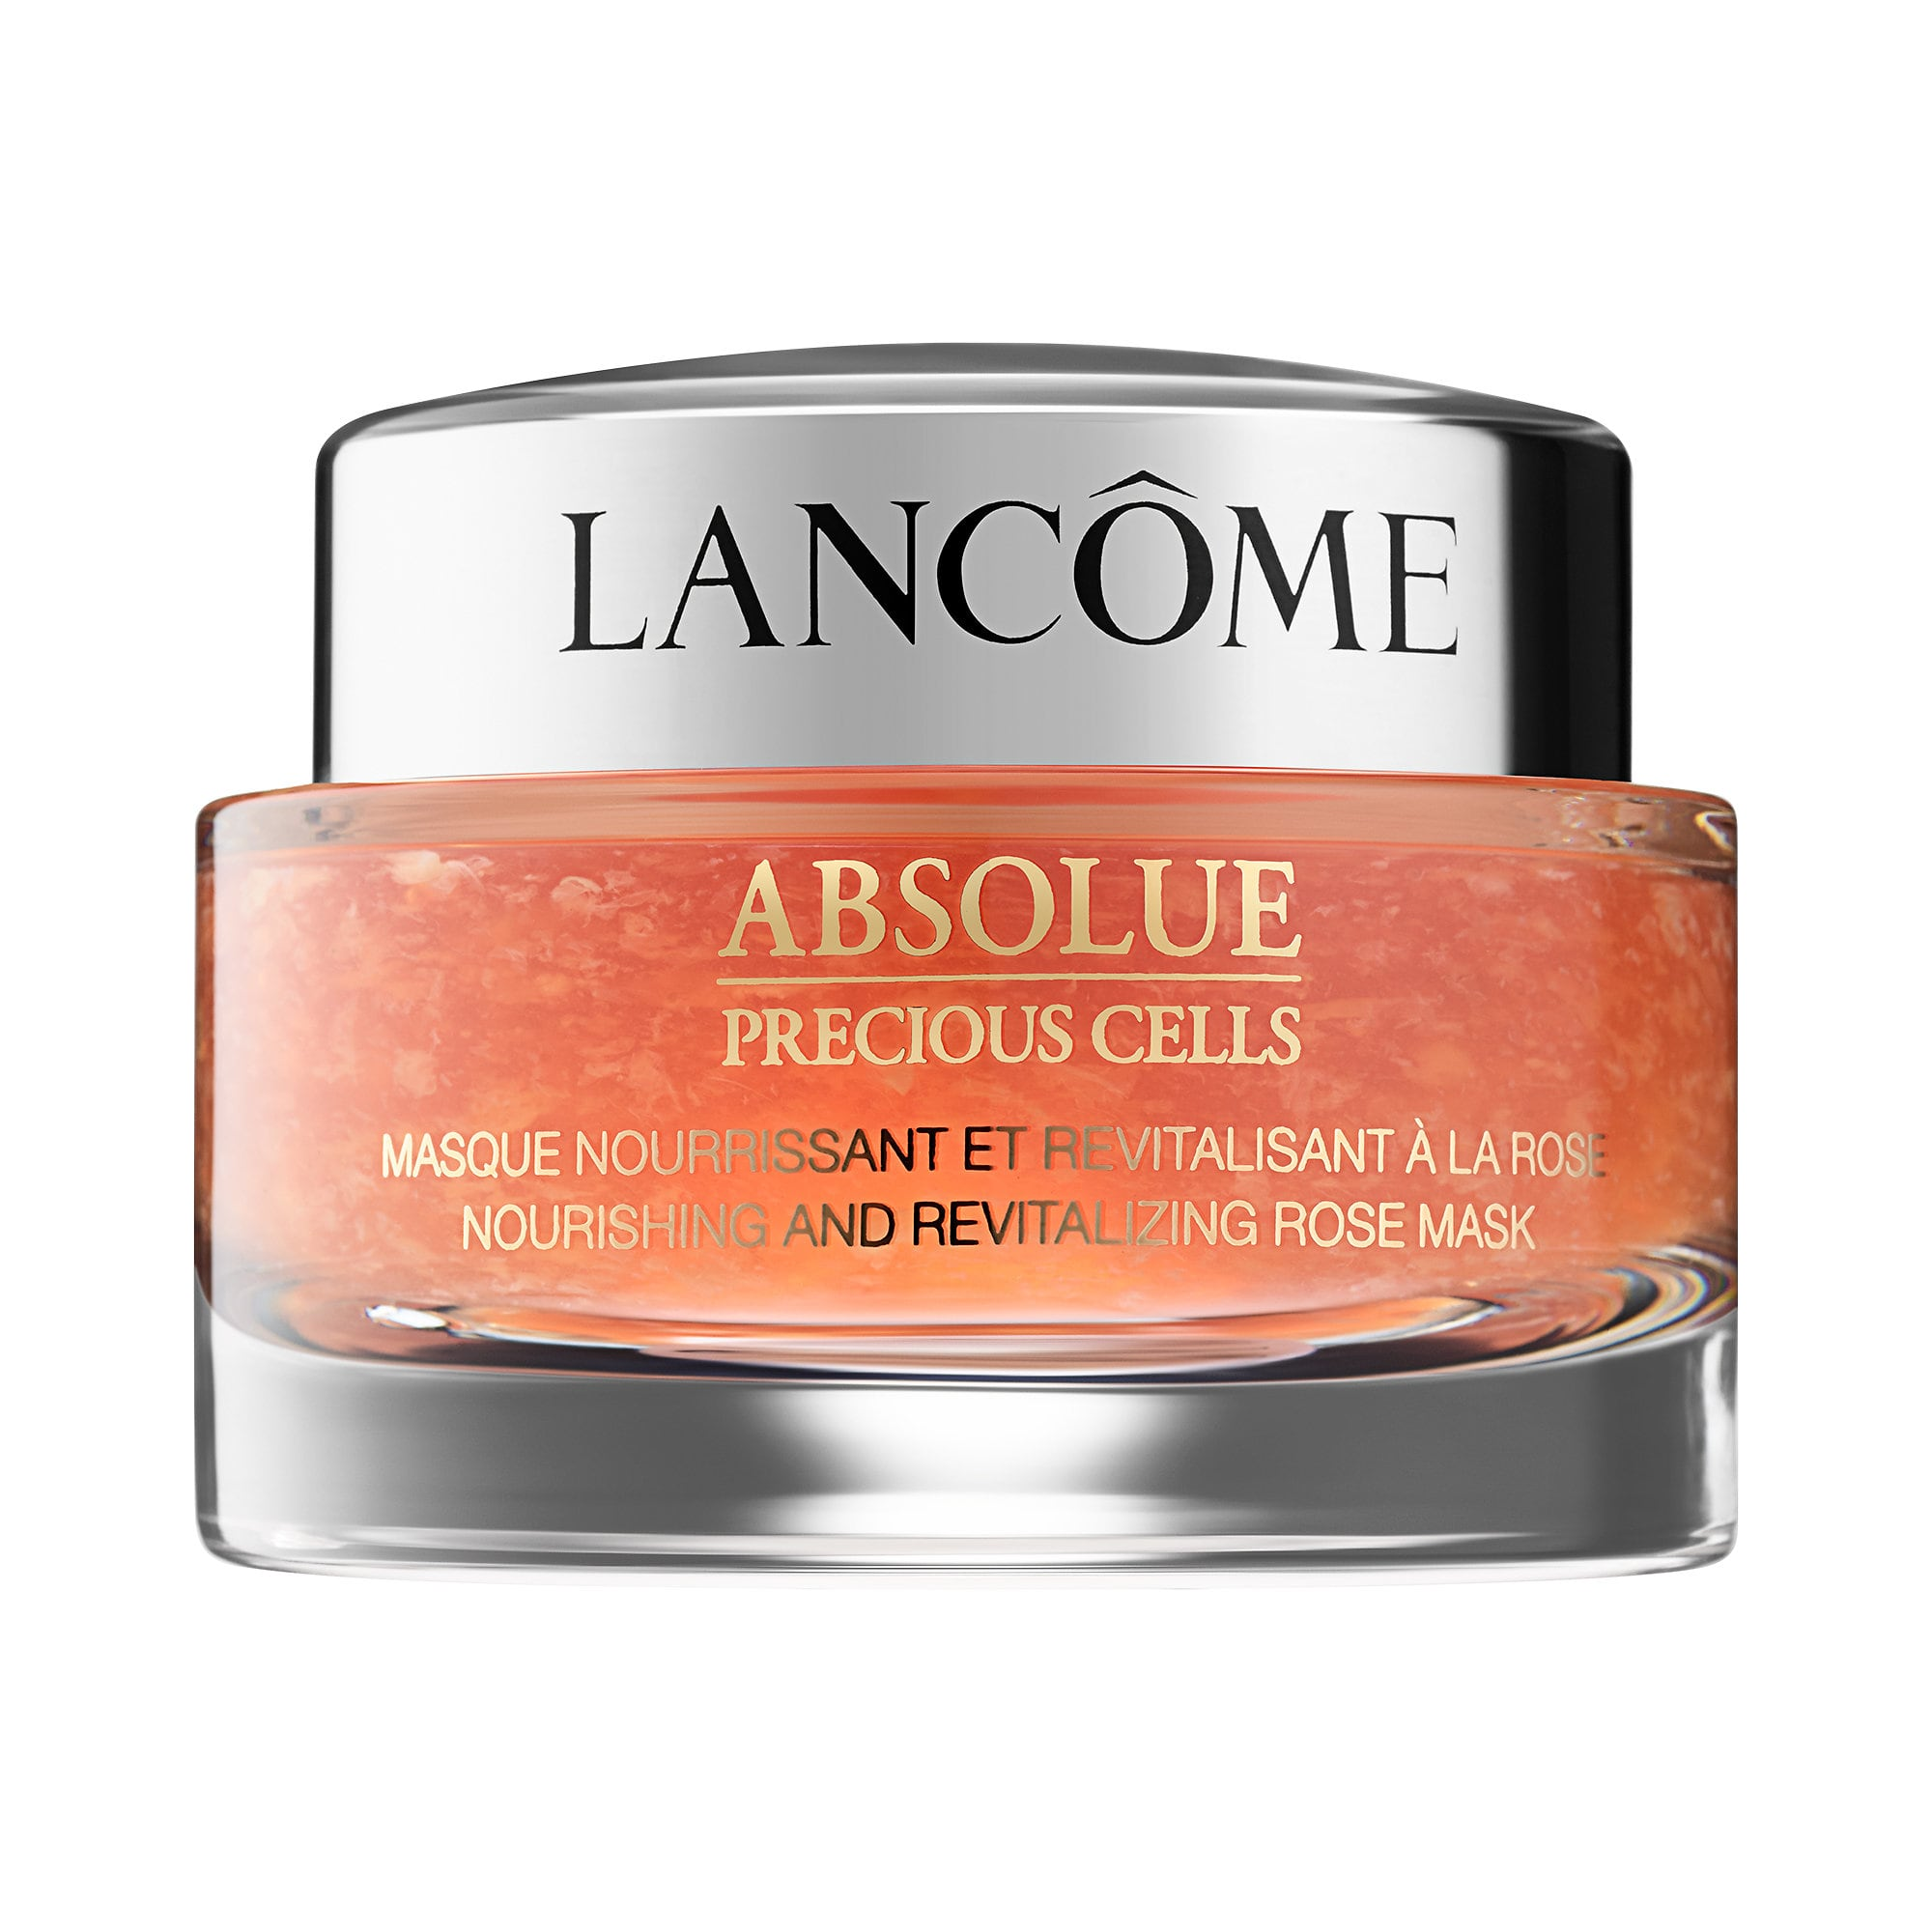 Lancome Absolue Precious Cells (Nourishing And Revitalizing Rose Mask) 75 ml